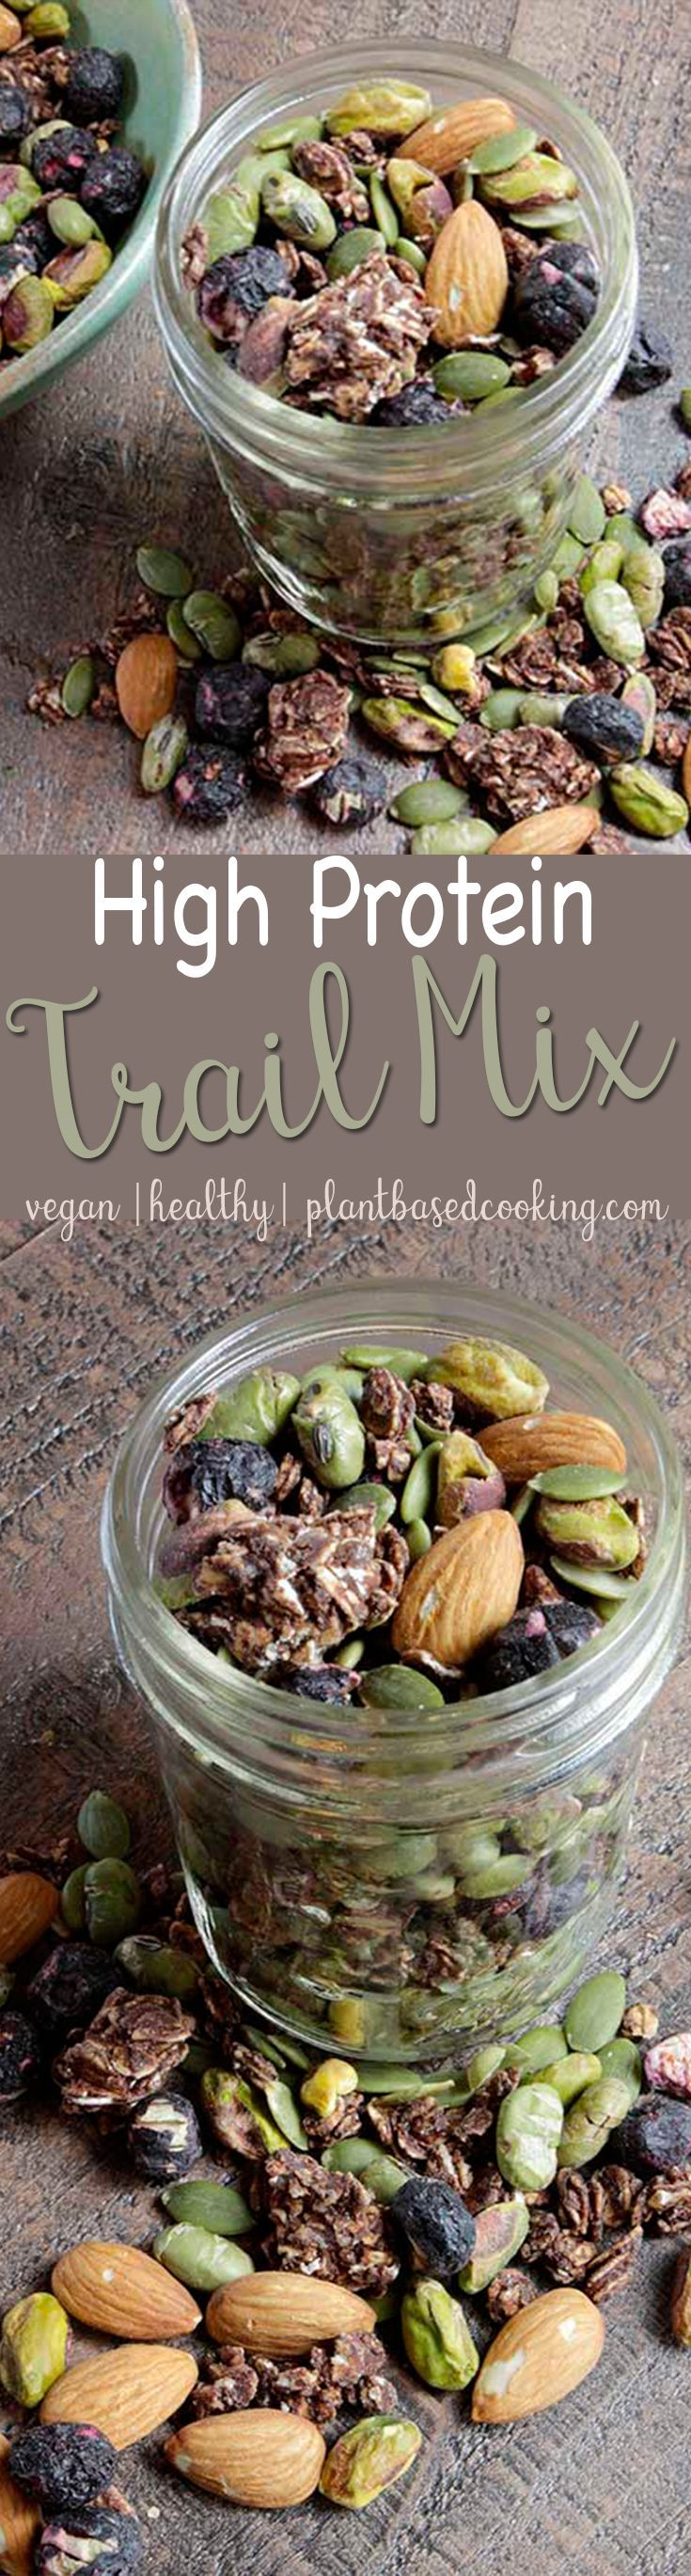 High Protein Trail Mix